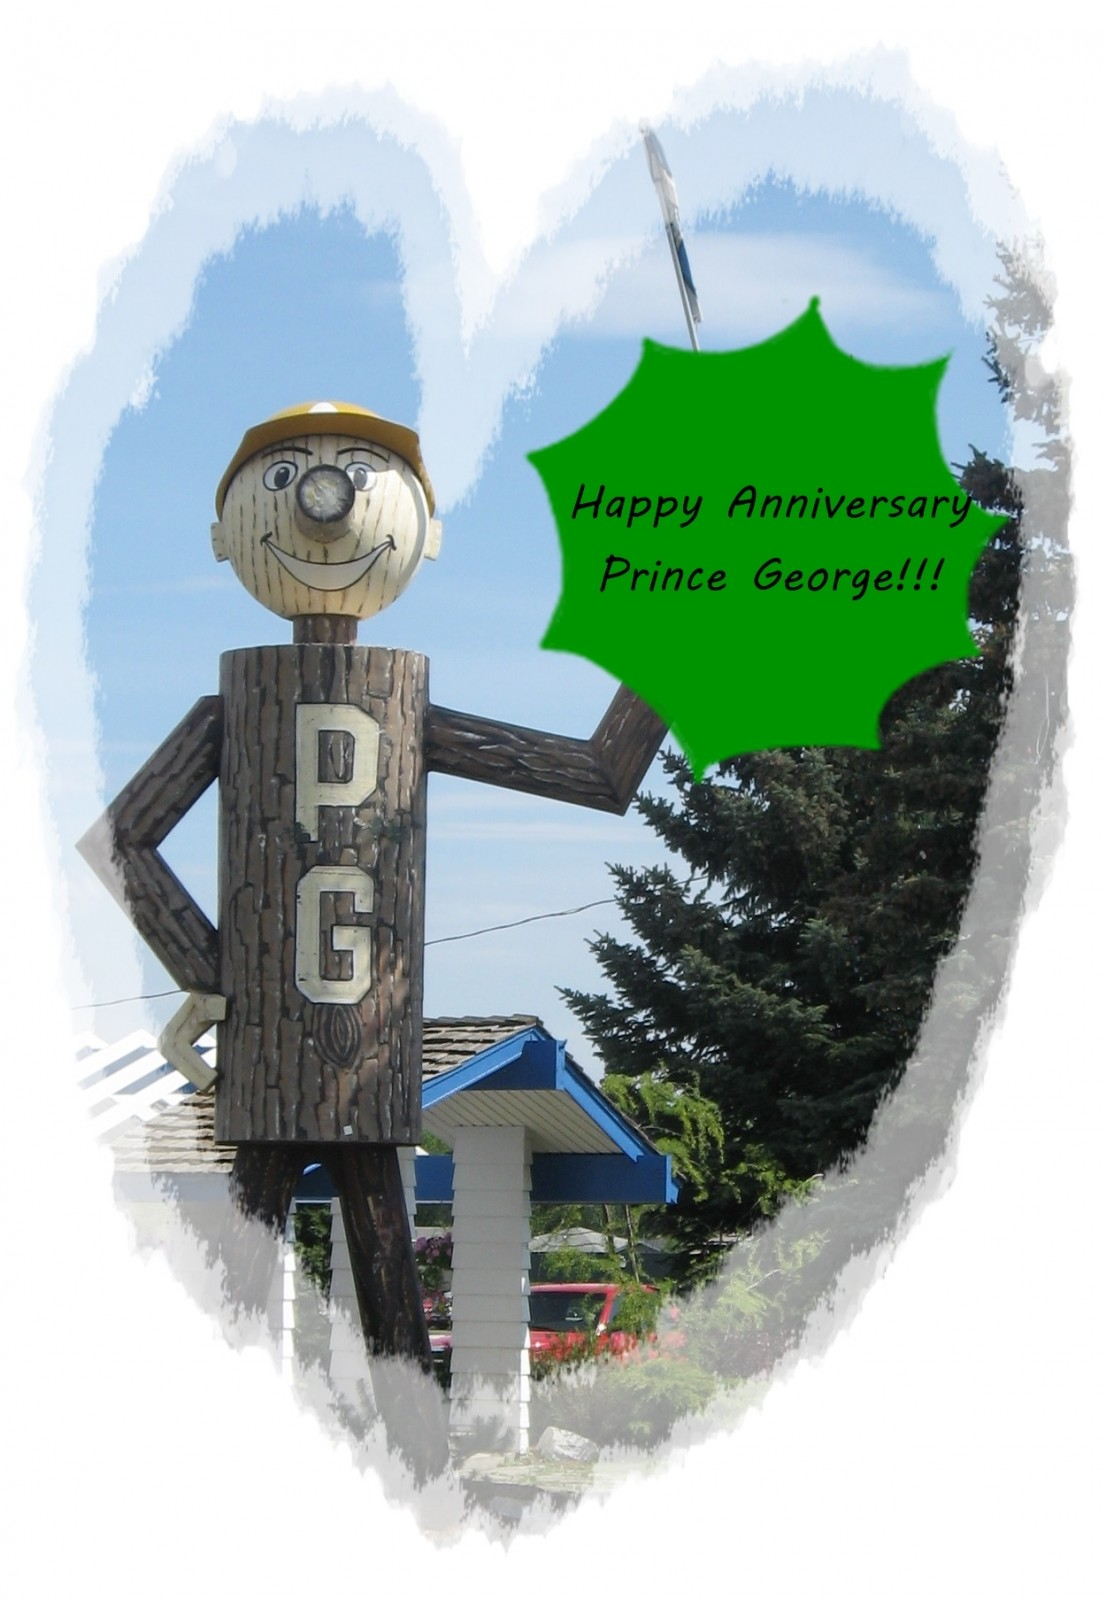 Happy Anniversary, PG...here's a rock!